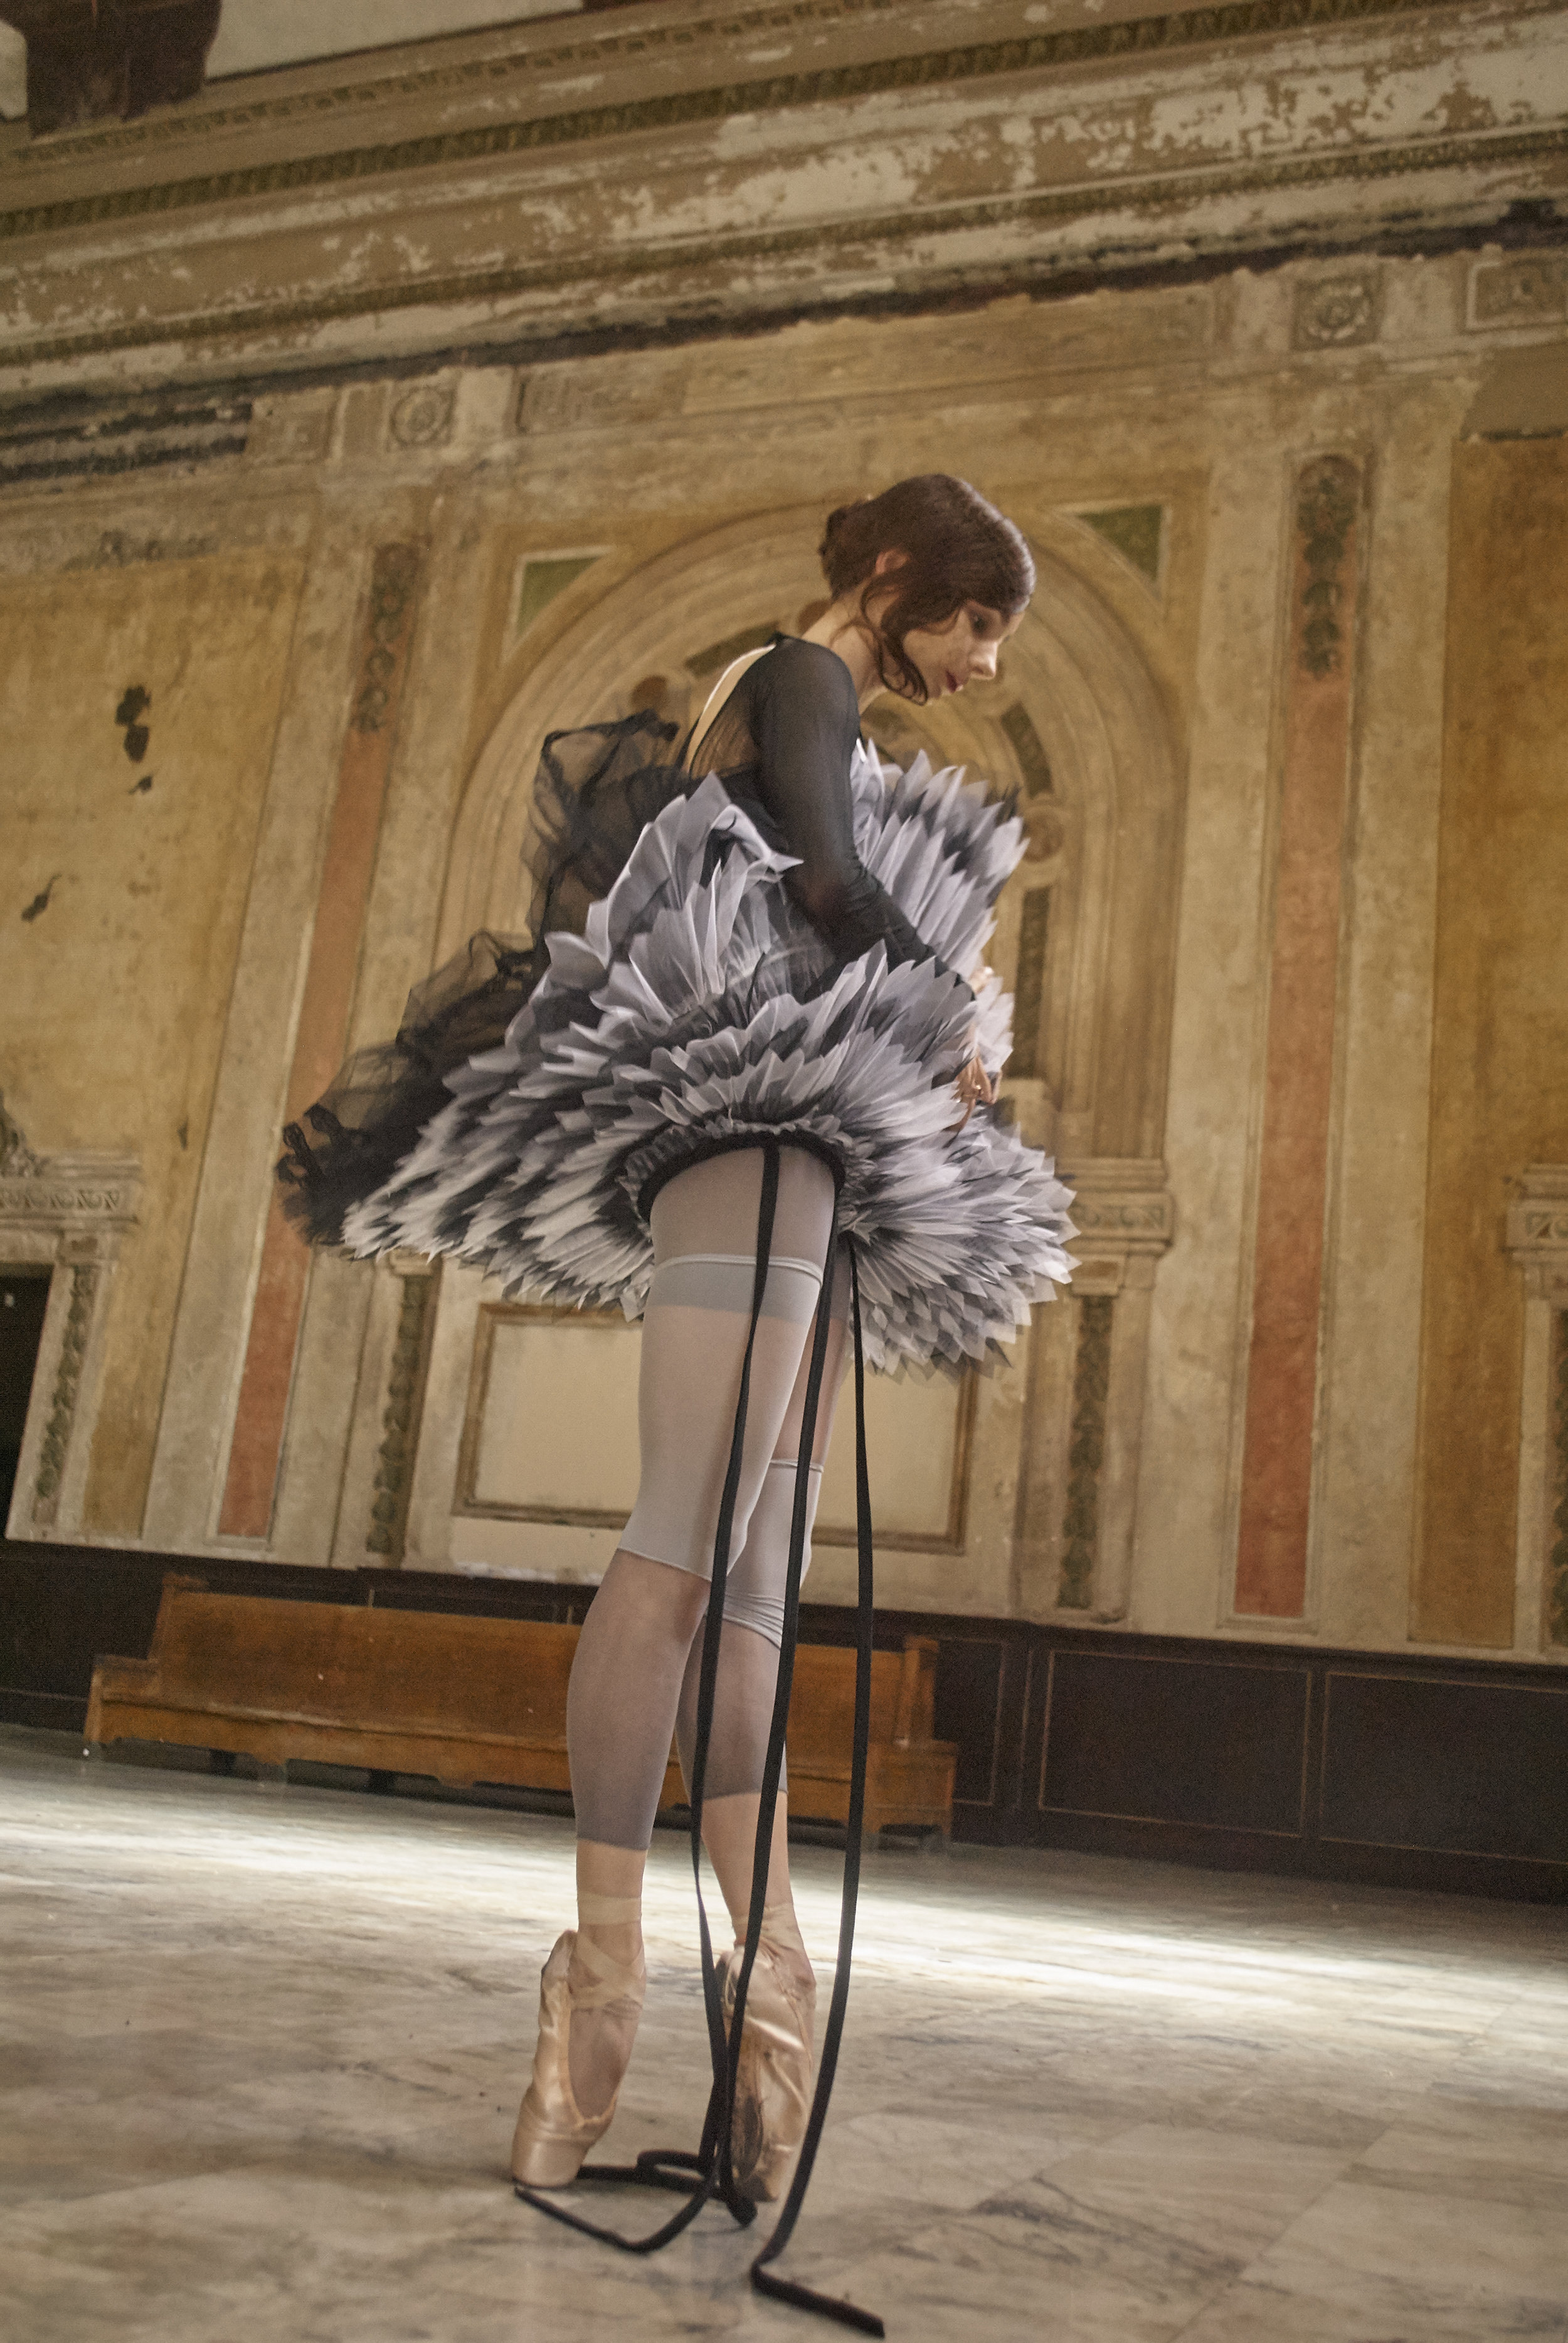 Tutu by Sophie Sunjung Lee, BFA Fashion Design. Leotard and Pointe Shoes, model's own. All Stockings and Harness, stylist's own.